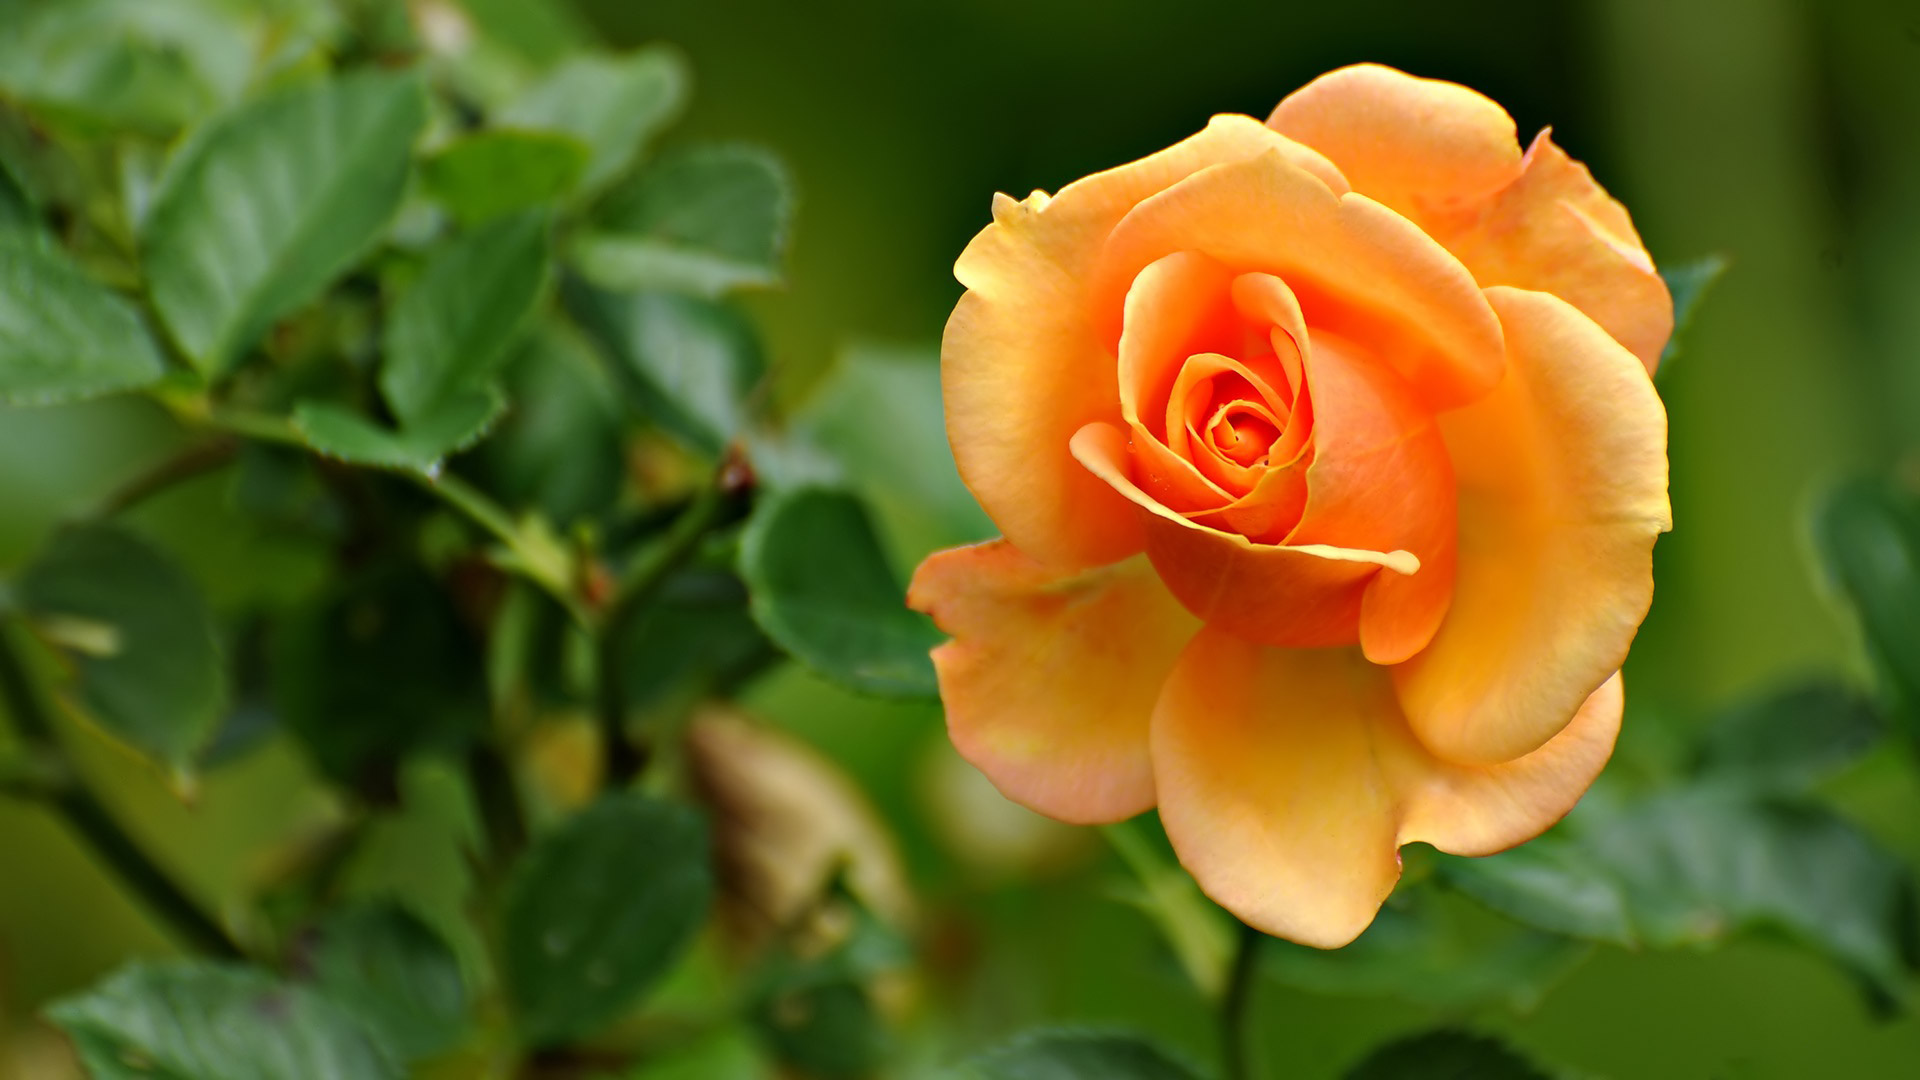 peach-rose-peach-colored-flowers-hd-wallpaper